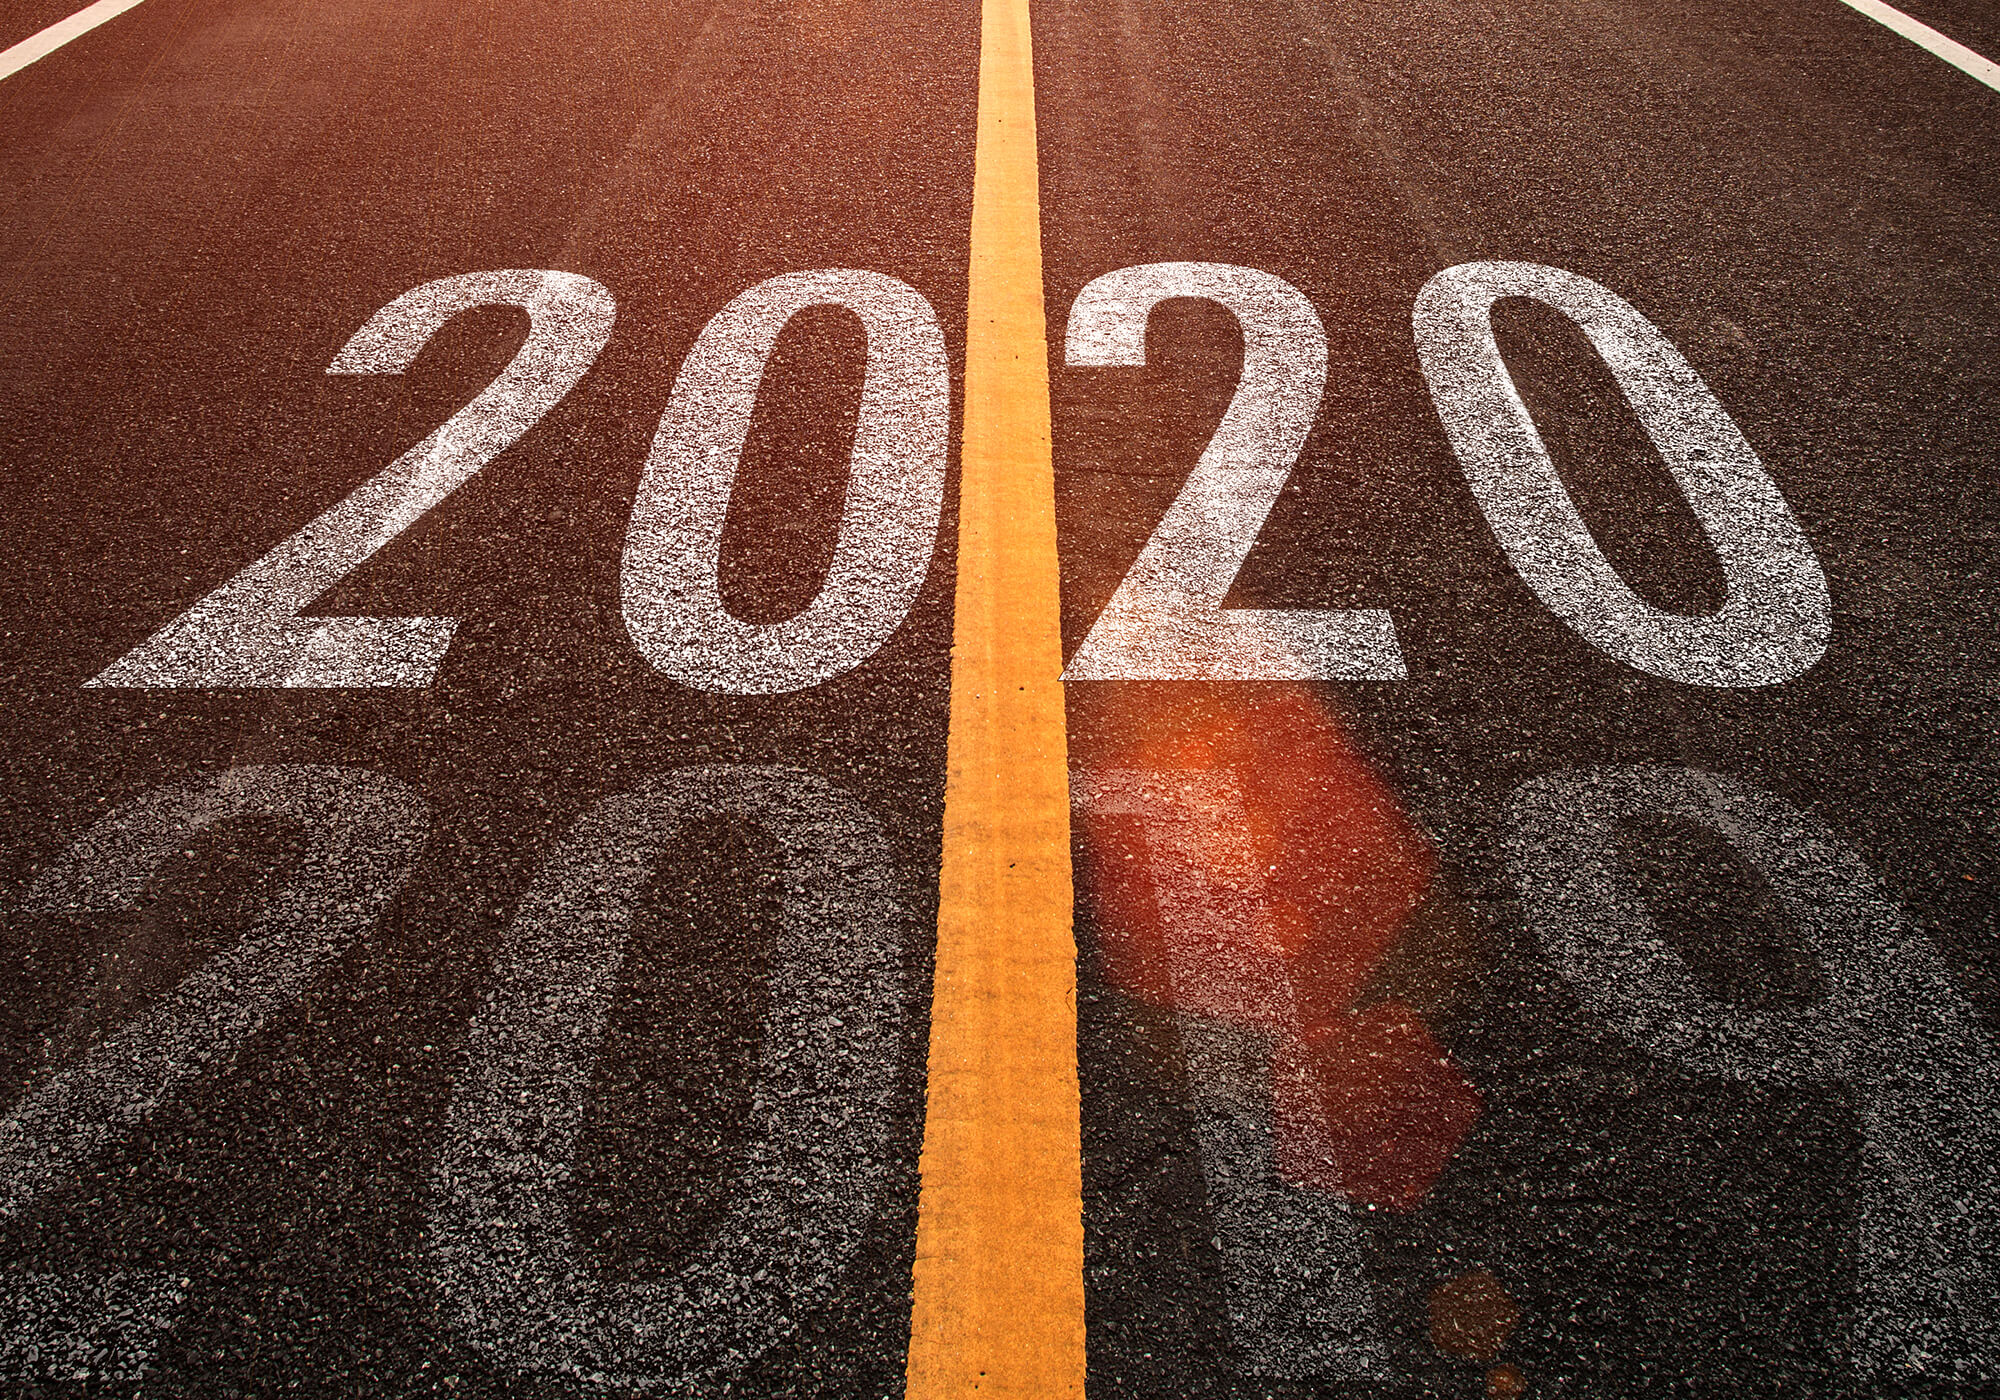 2020 on road with vertical yellow line